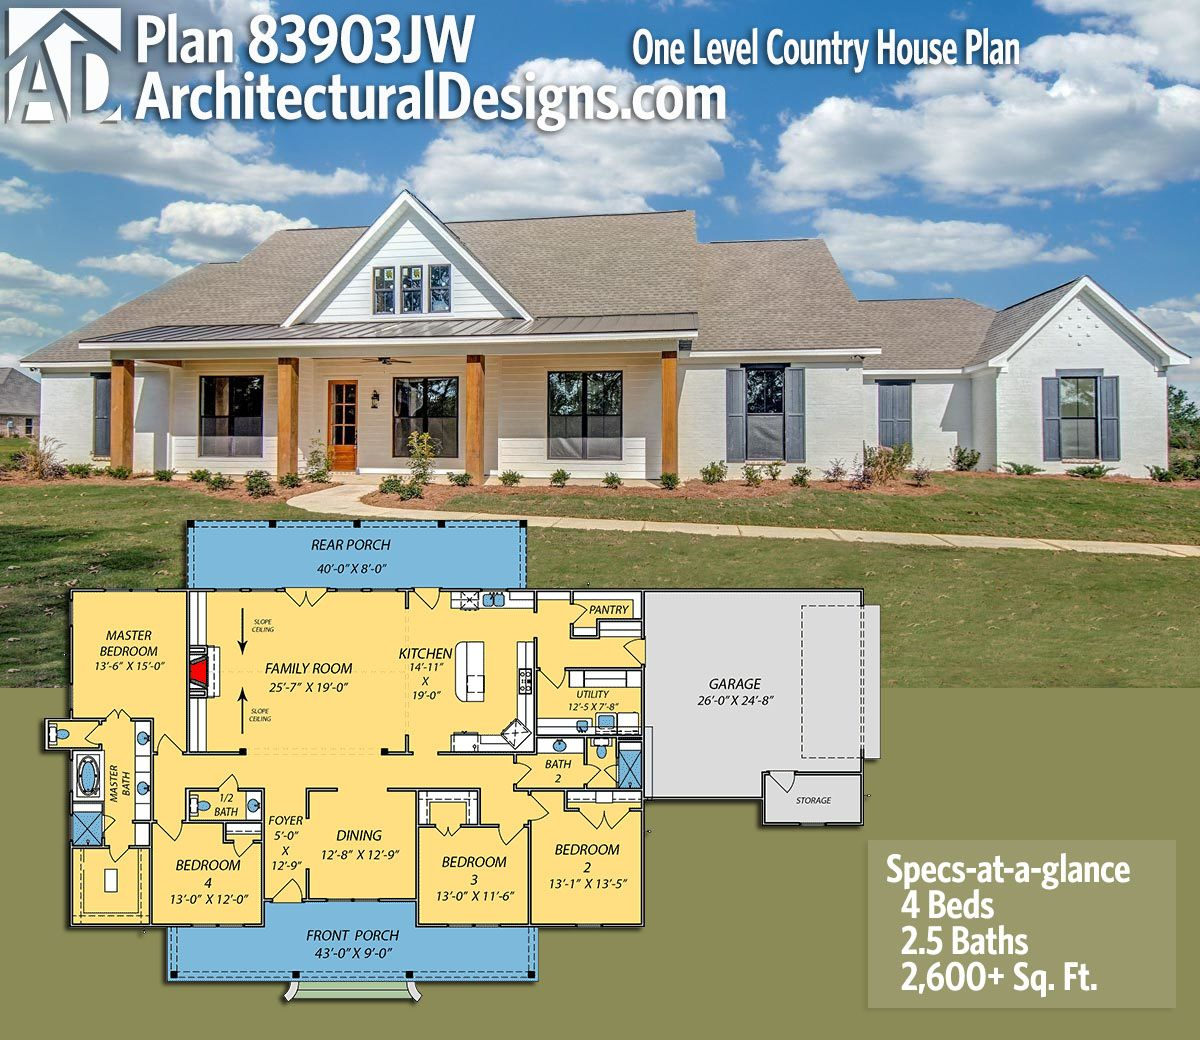 Plan 83903jw one level country house plan architectural for Modern farmhouse floor plans